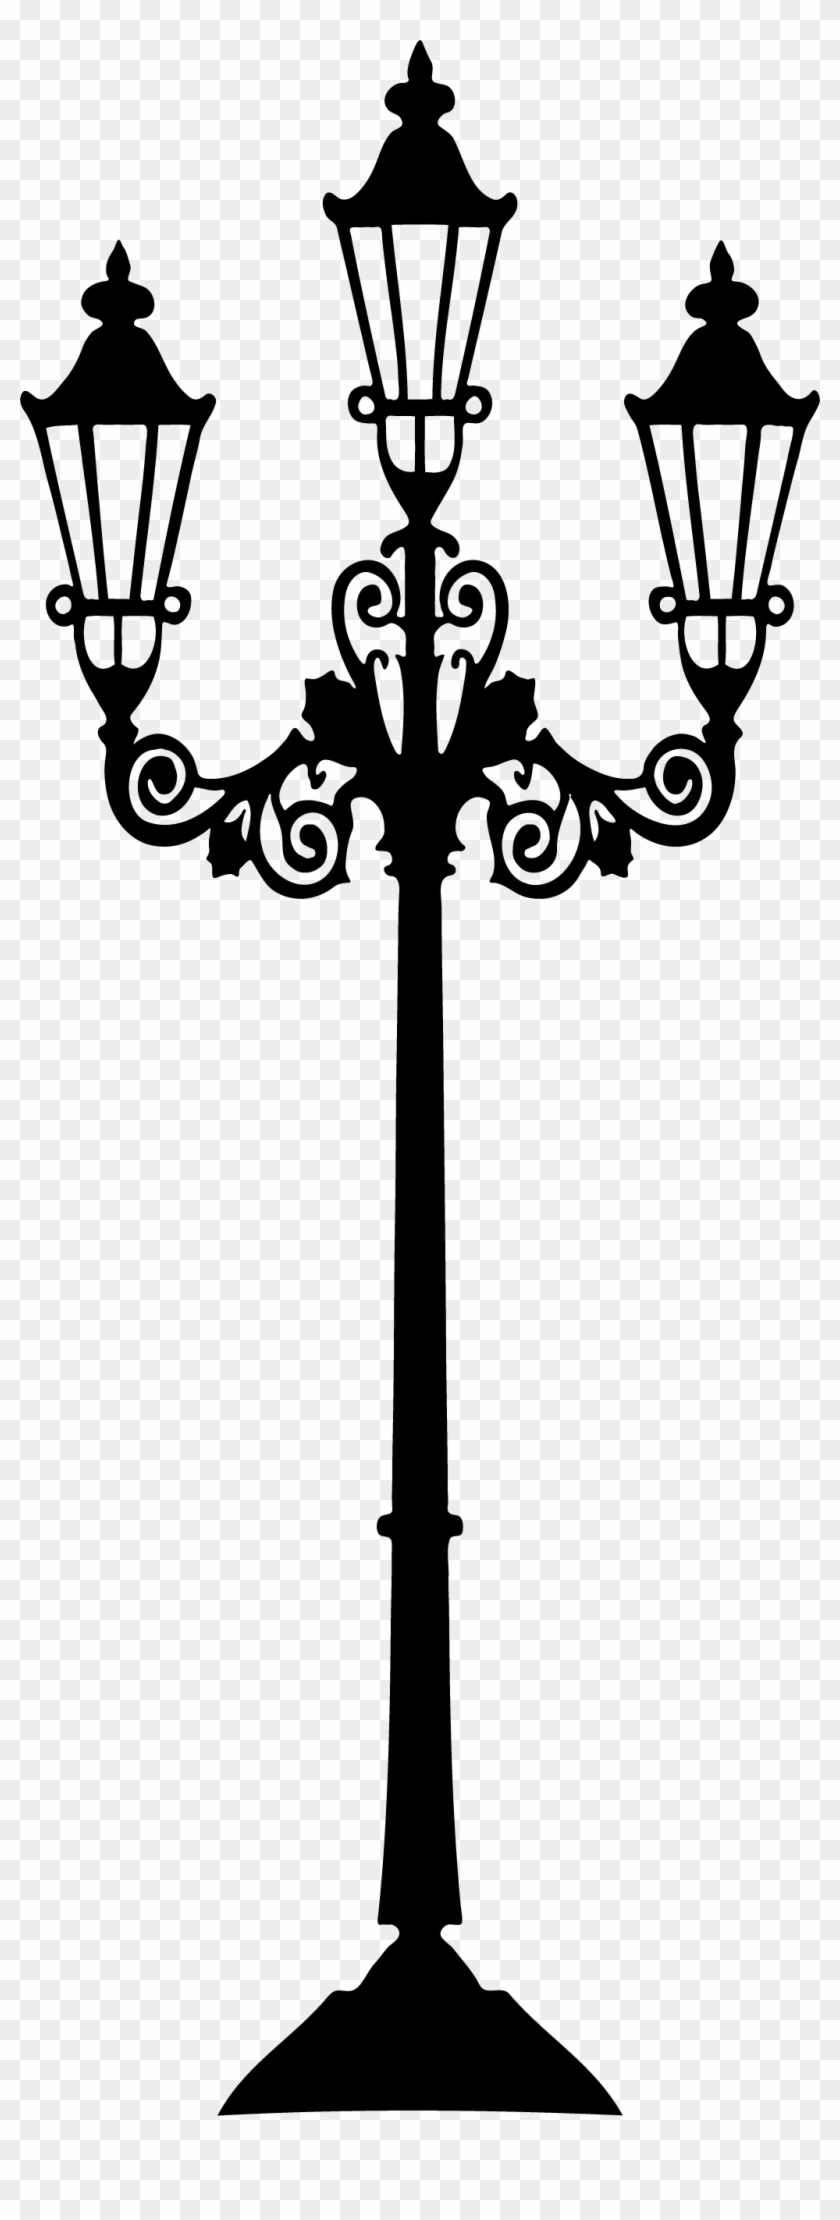 Drawn Bulb Victorian - Street Light Vector #62525